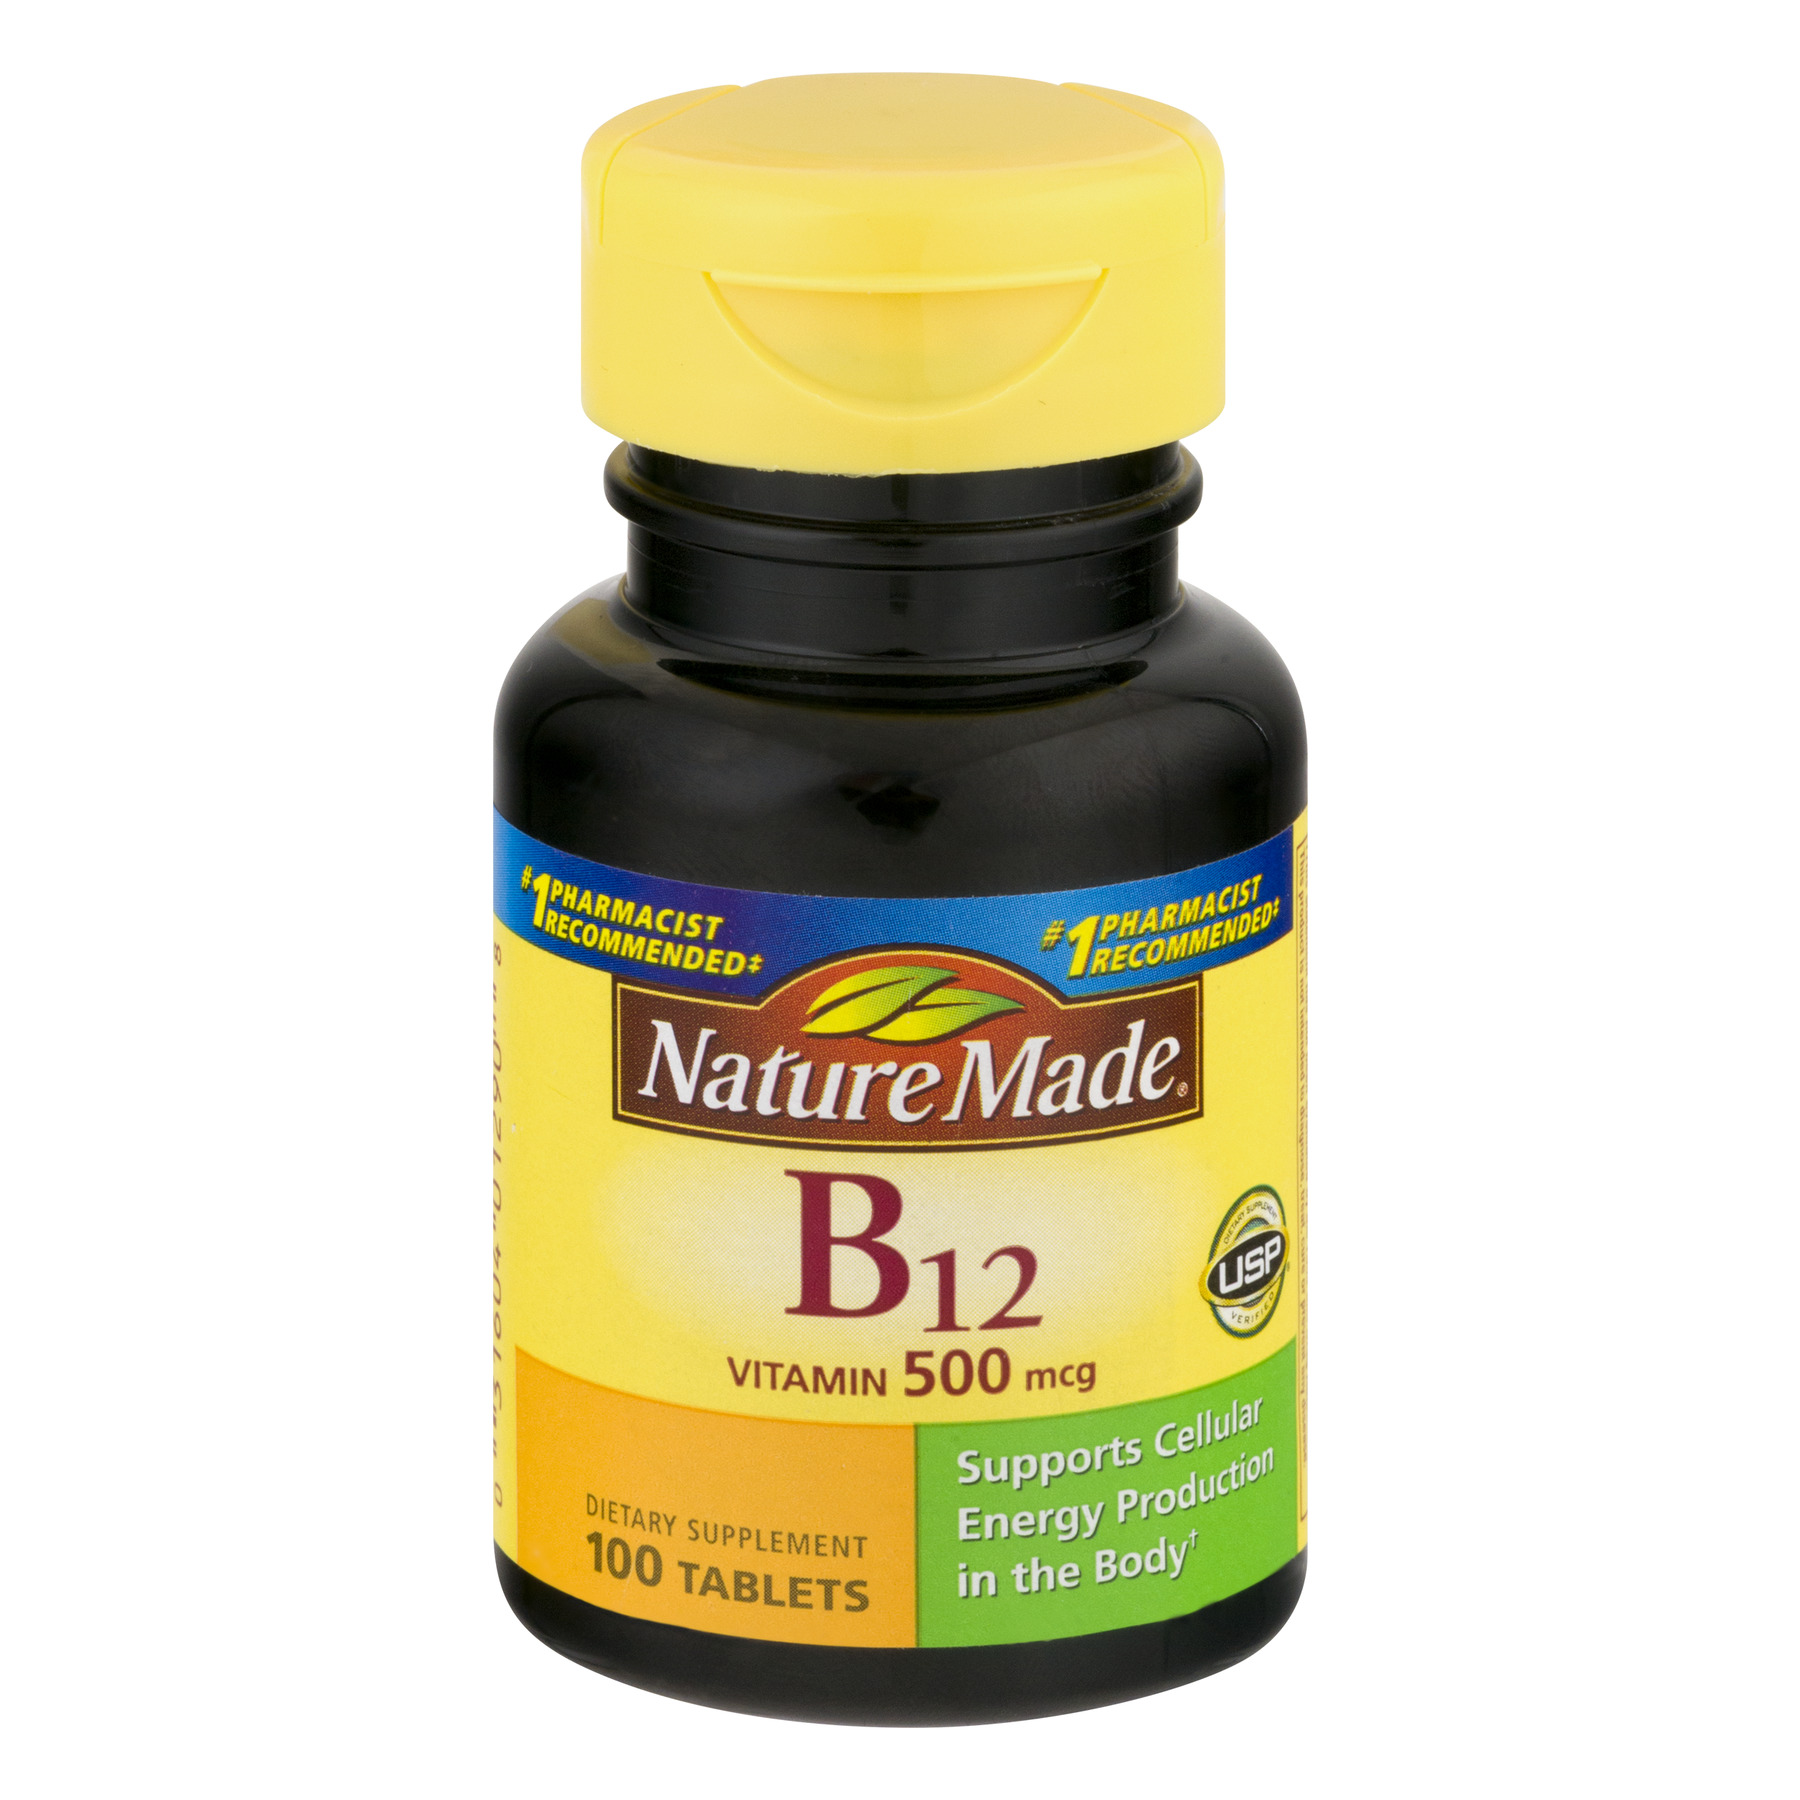 Nature Made Vitamin B12 Tablets - 100 CT100.0 CT